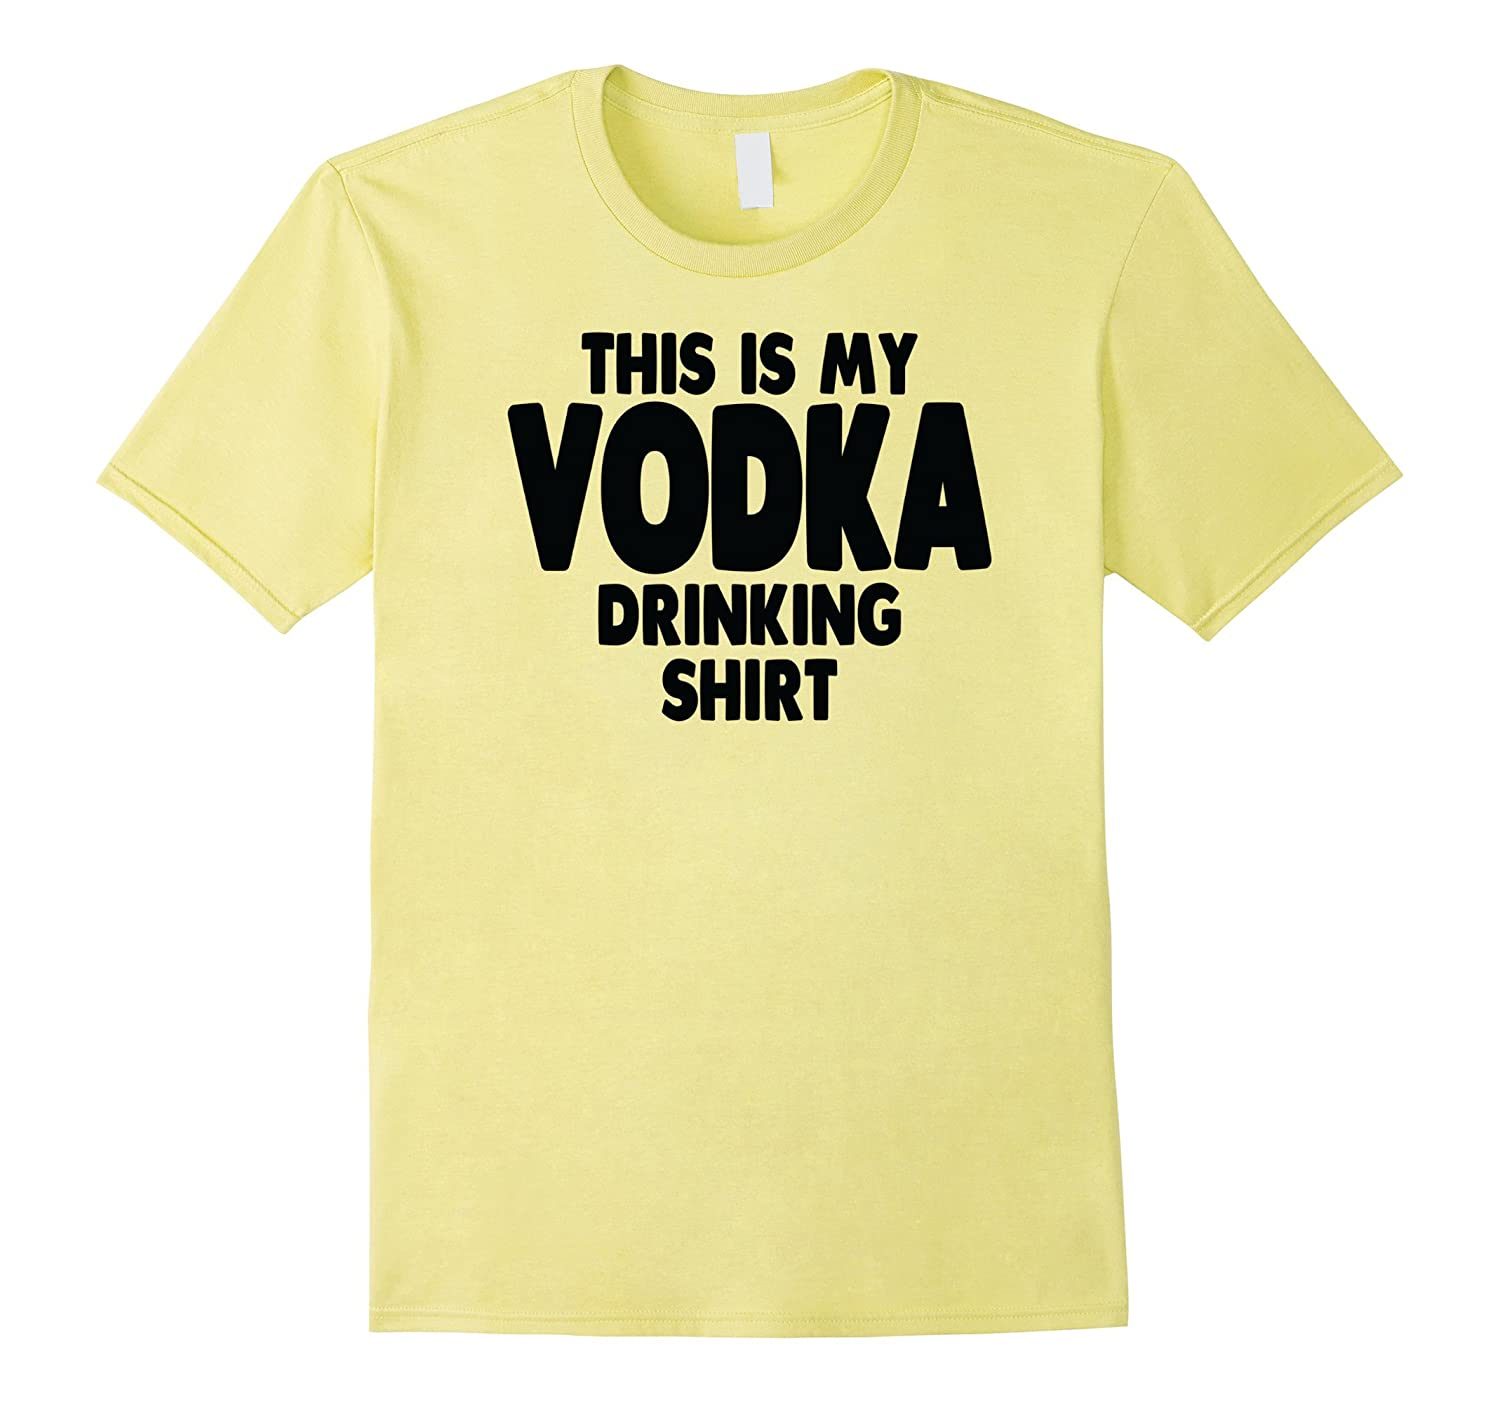 Vodka T-Shirt - This Is My Vodka Drinking Shirt Tee-CL